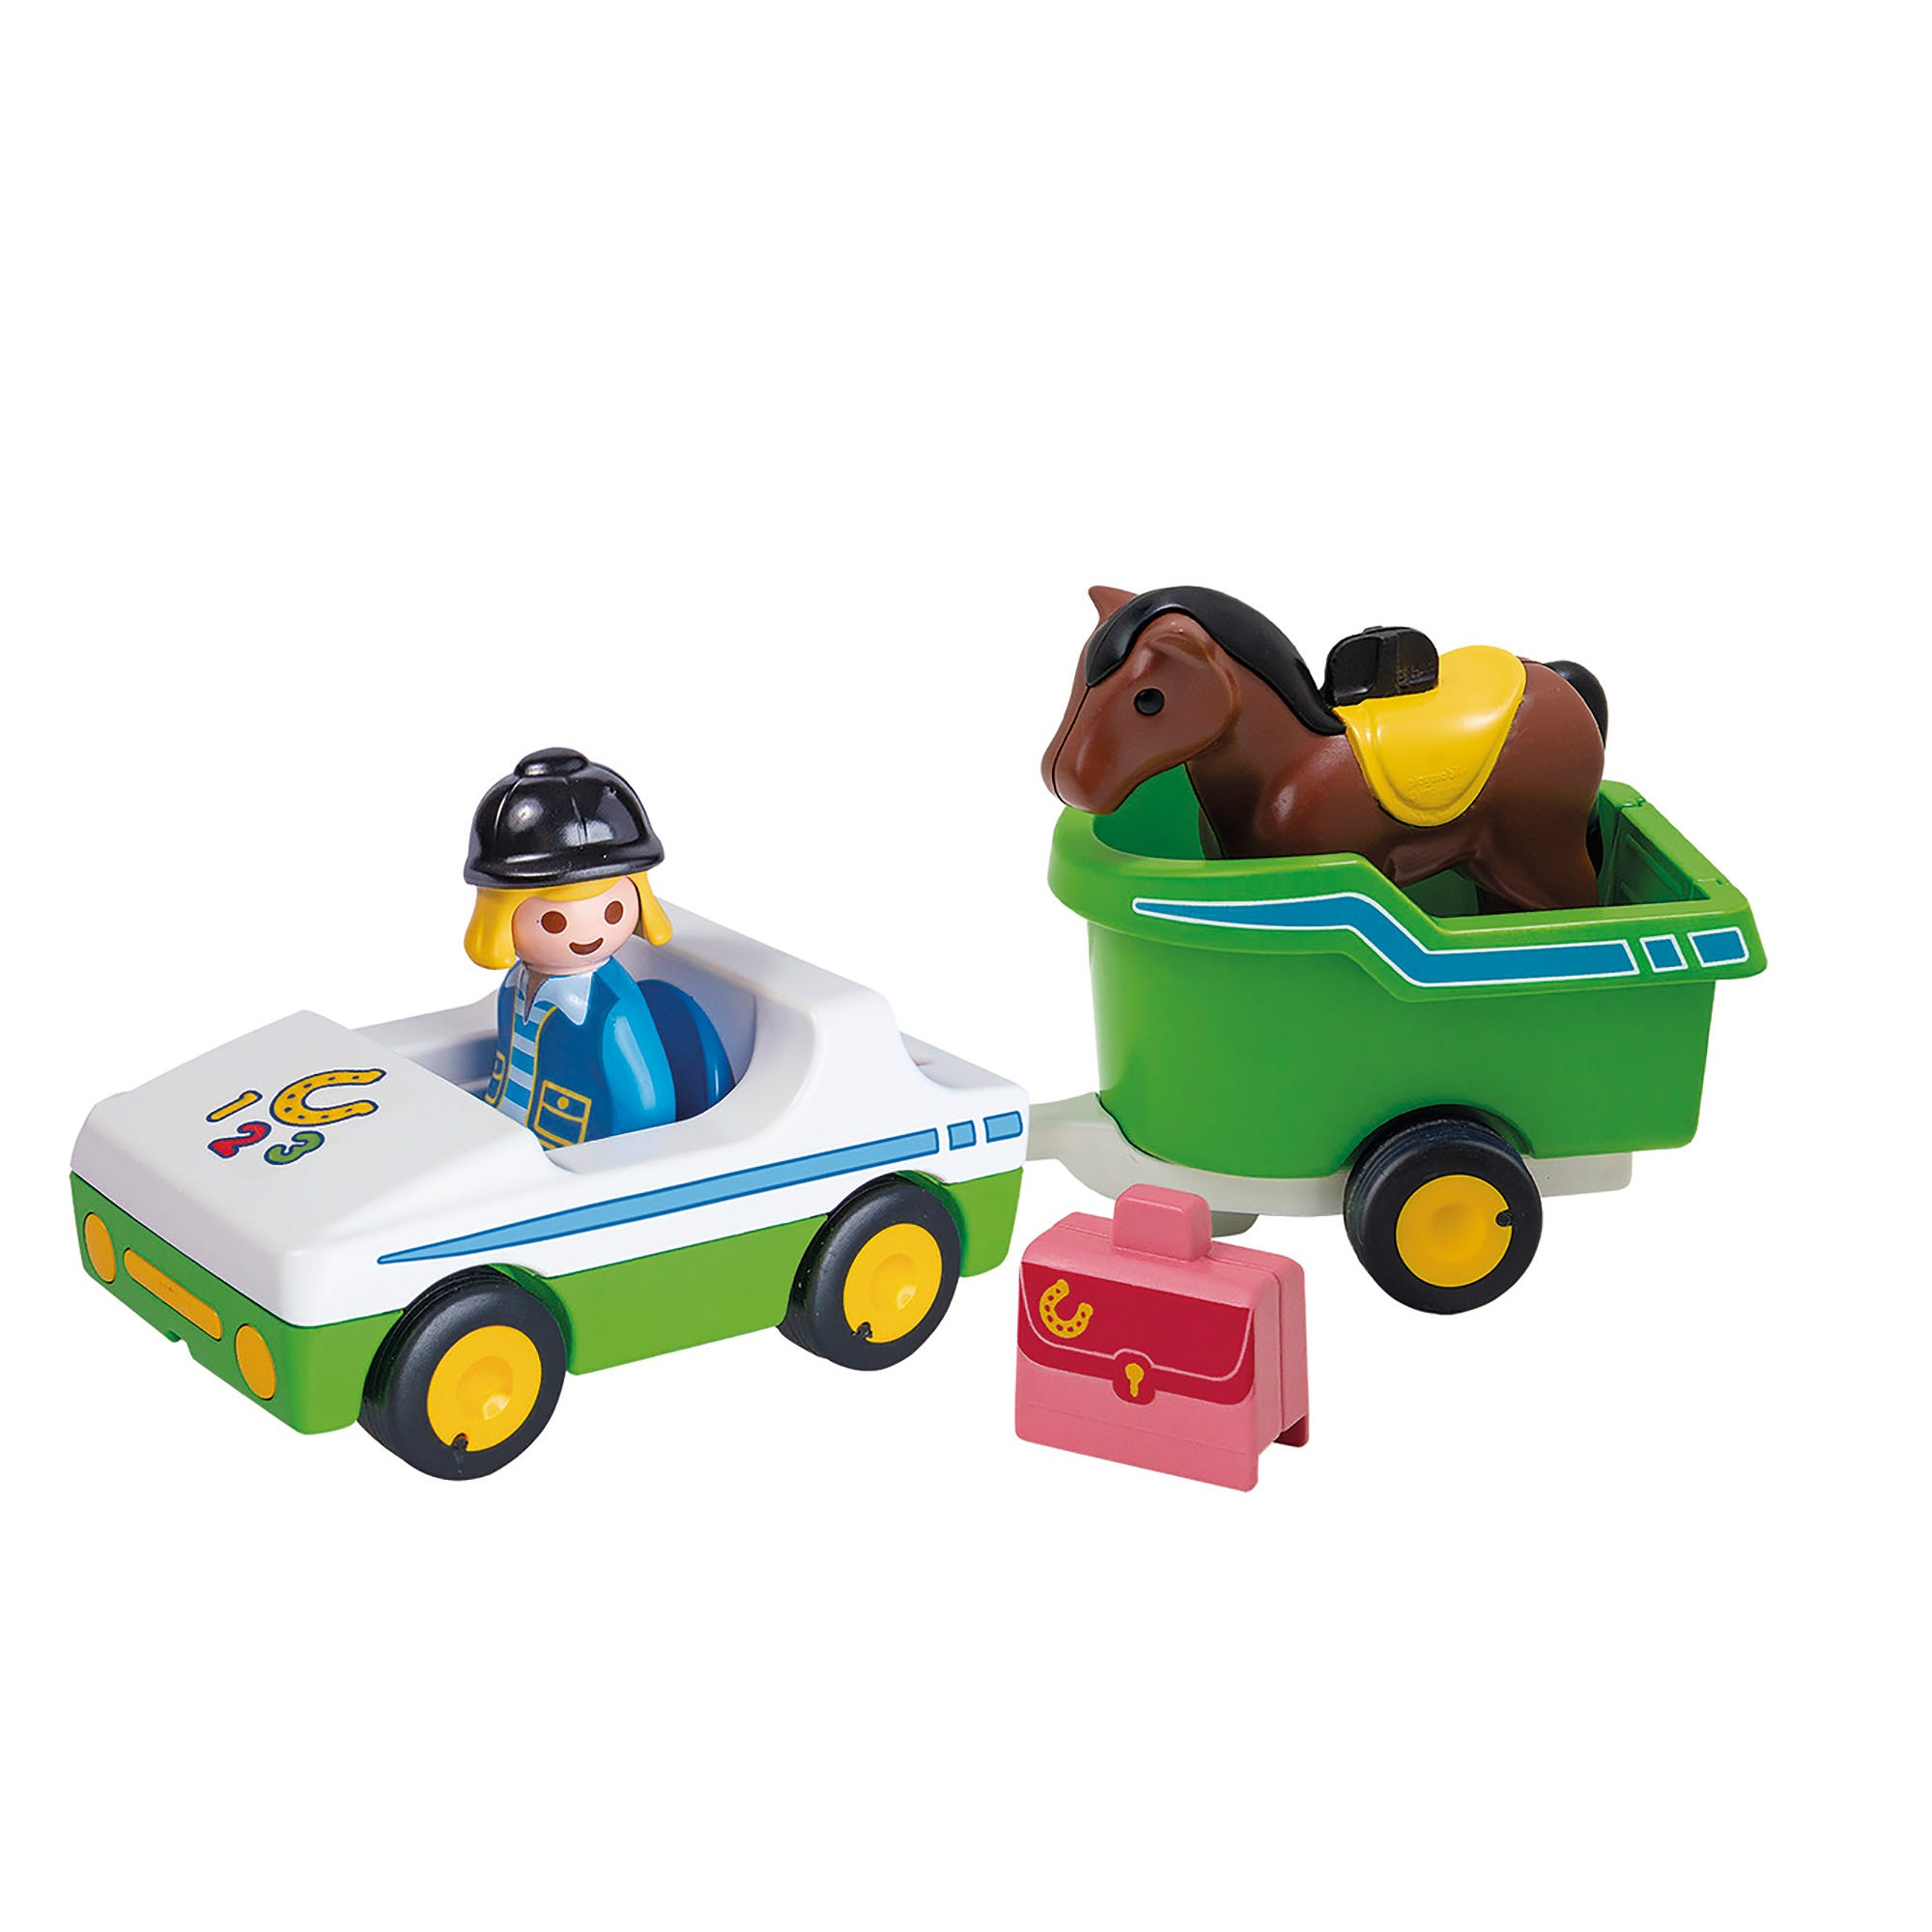 Playmobil 70181 1.2.3 Car With Horse Trailer